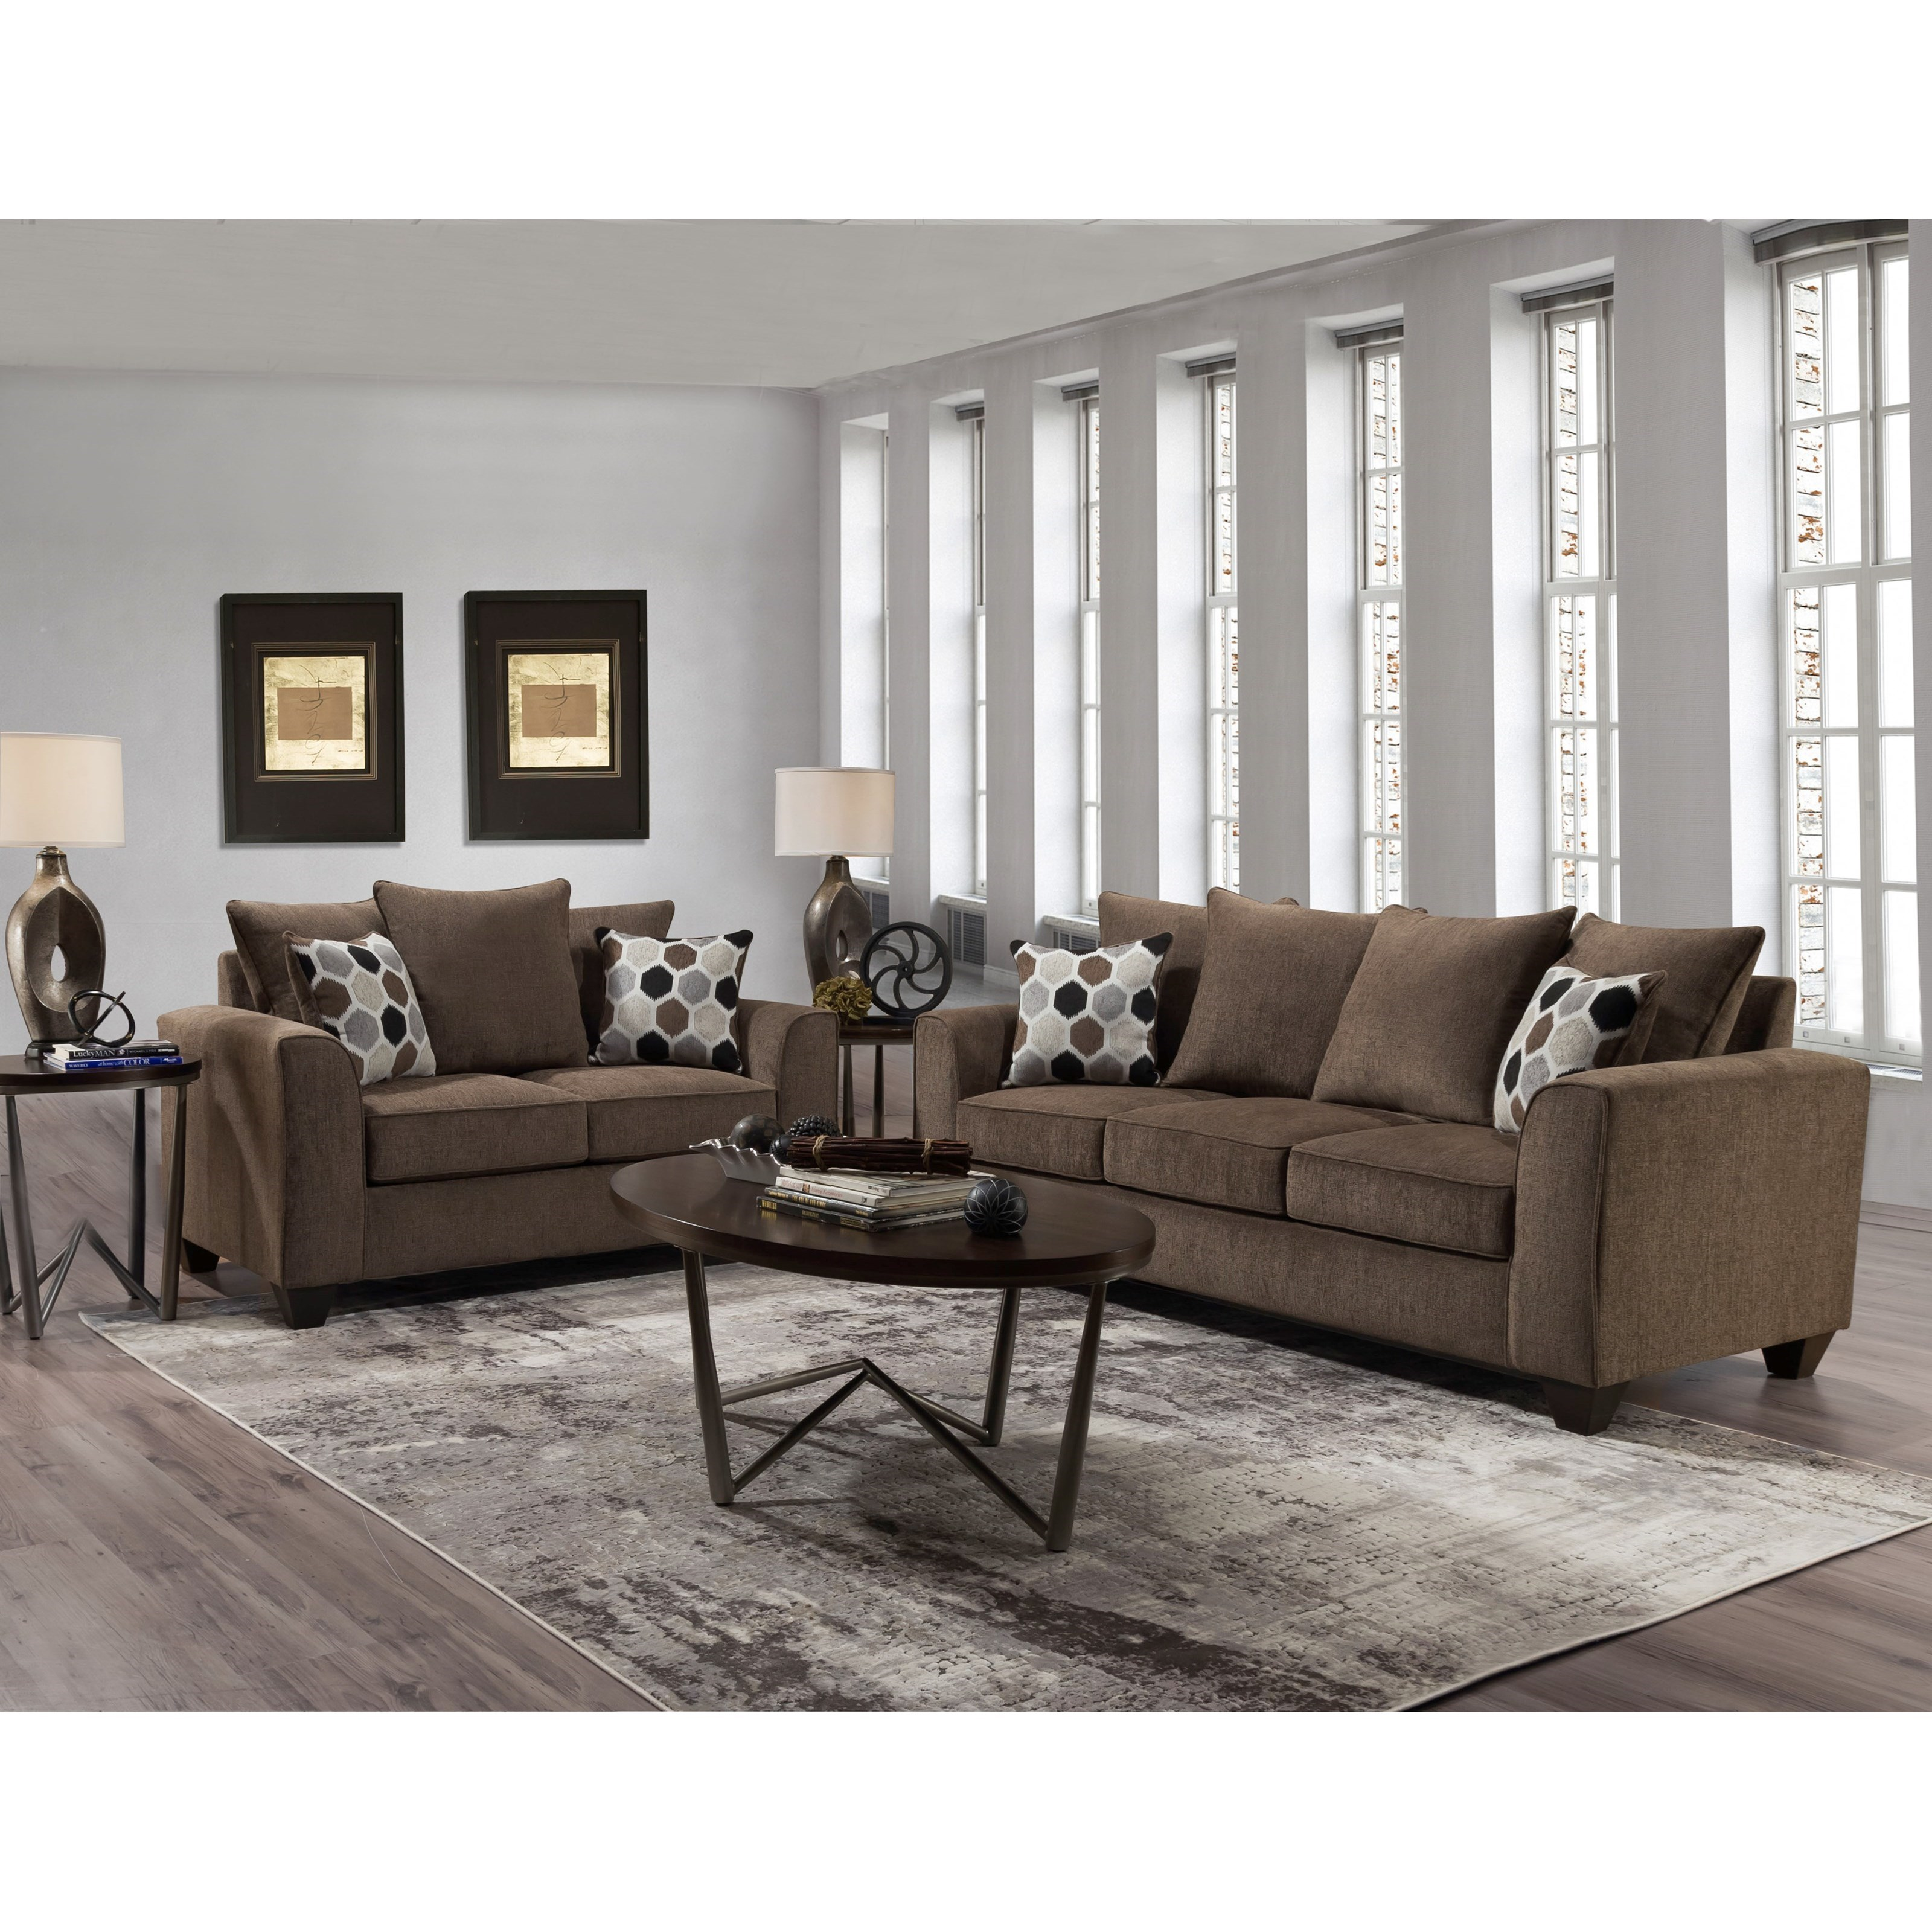 1220 Stationary Living Room Group by Peak Living at Prime Brothers Furniture